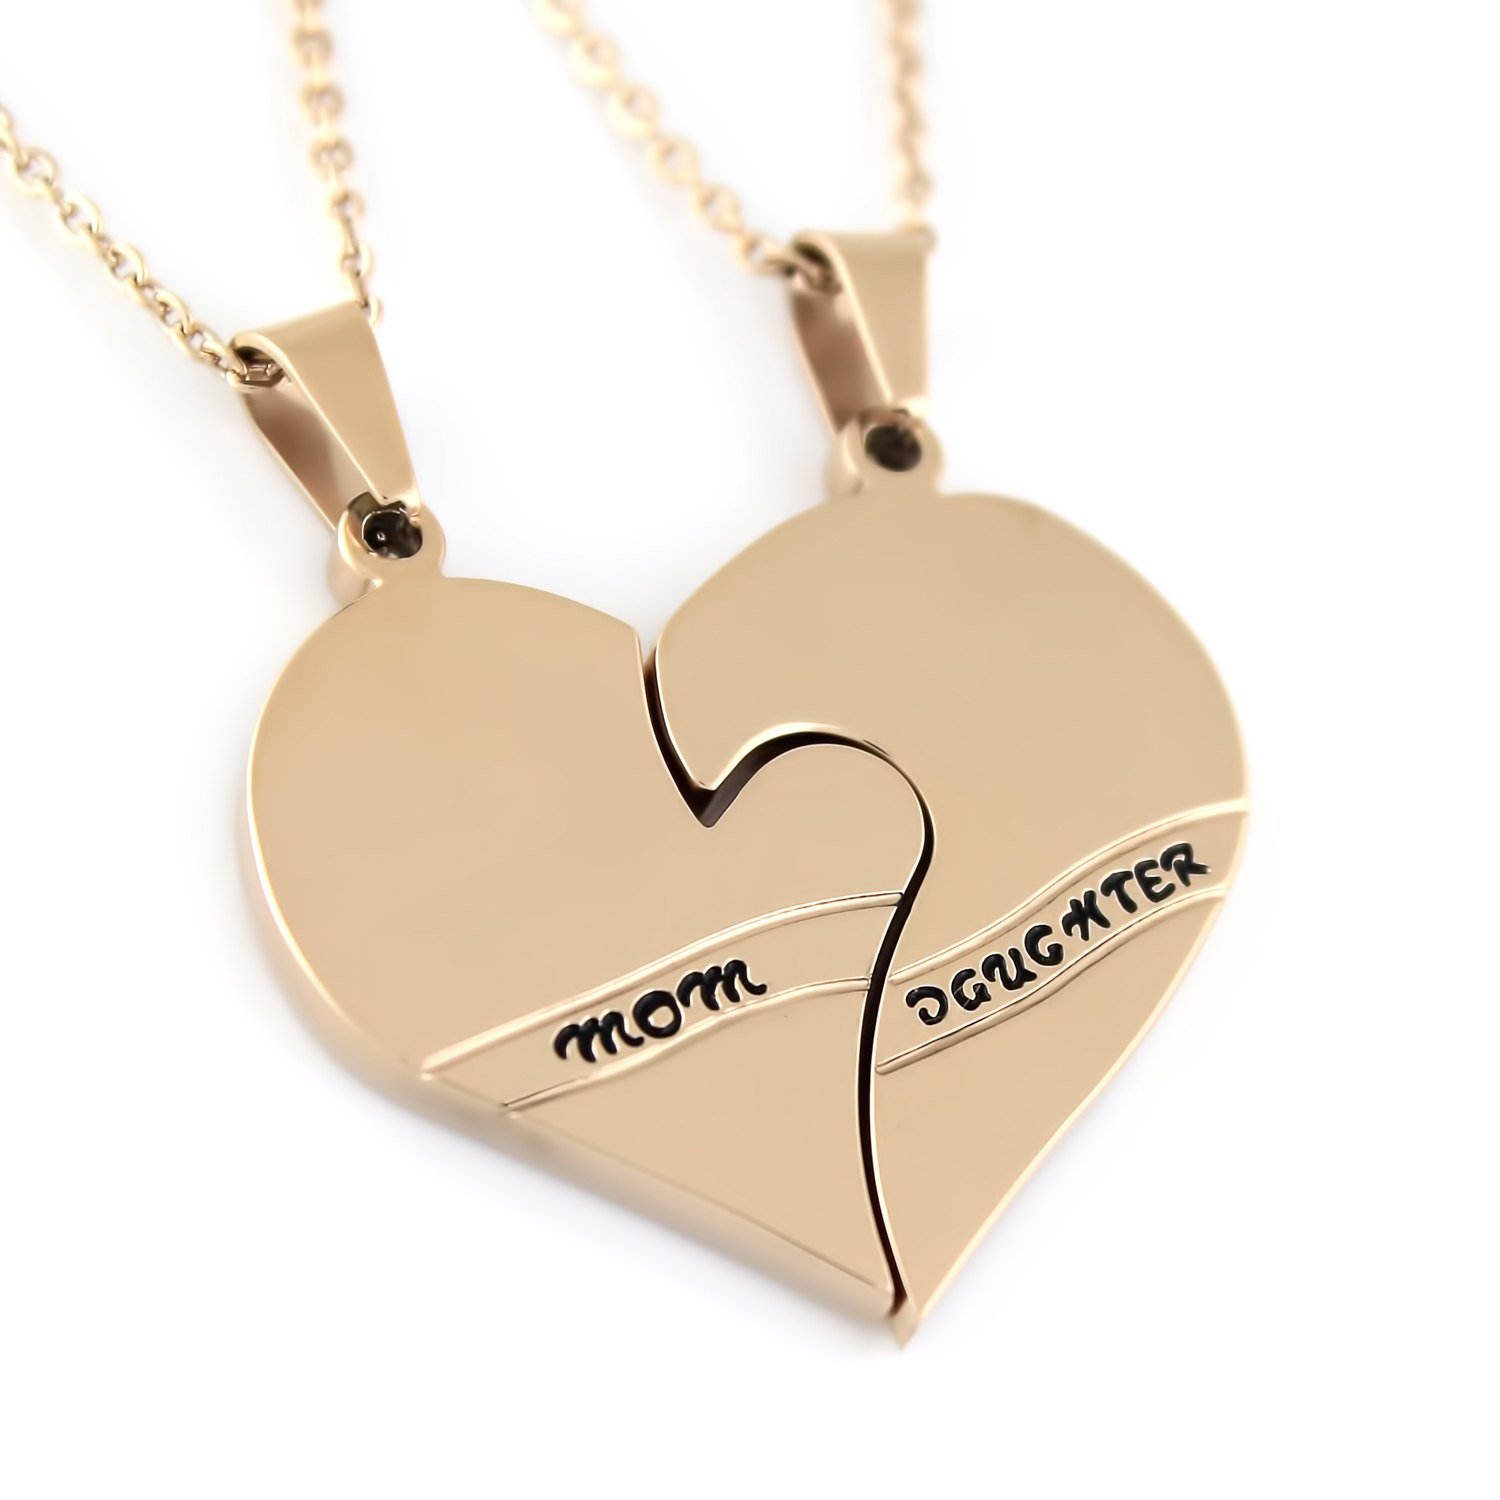 Amazon mother daughter pendant necklace rose gold tone mom amazon mother daughter pendant necklace rose gold tone mom daughter broken heart necklace jewelry aloadofball Choice Image